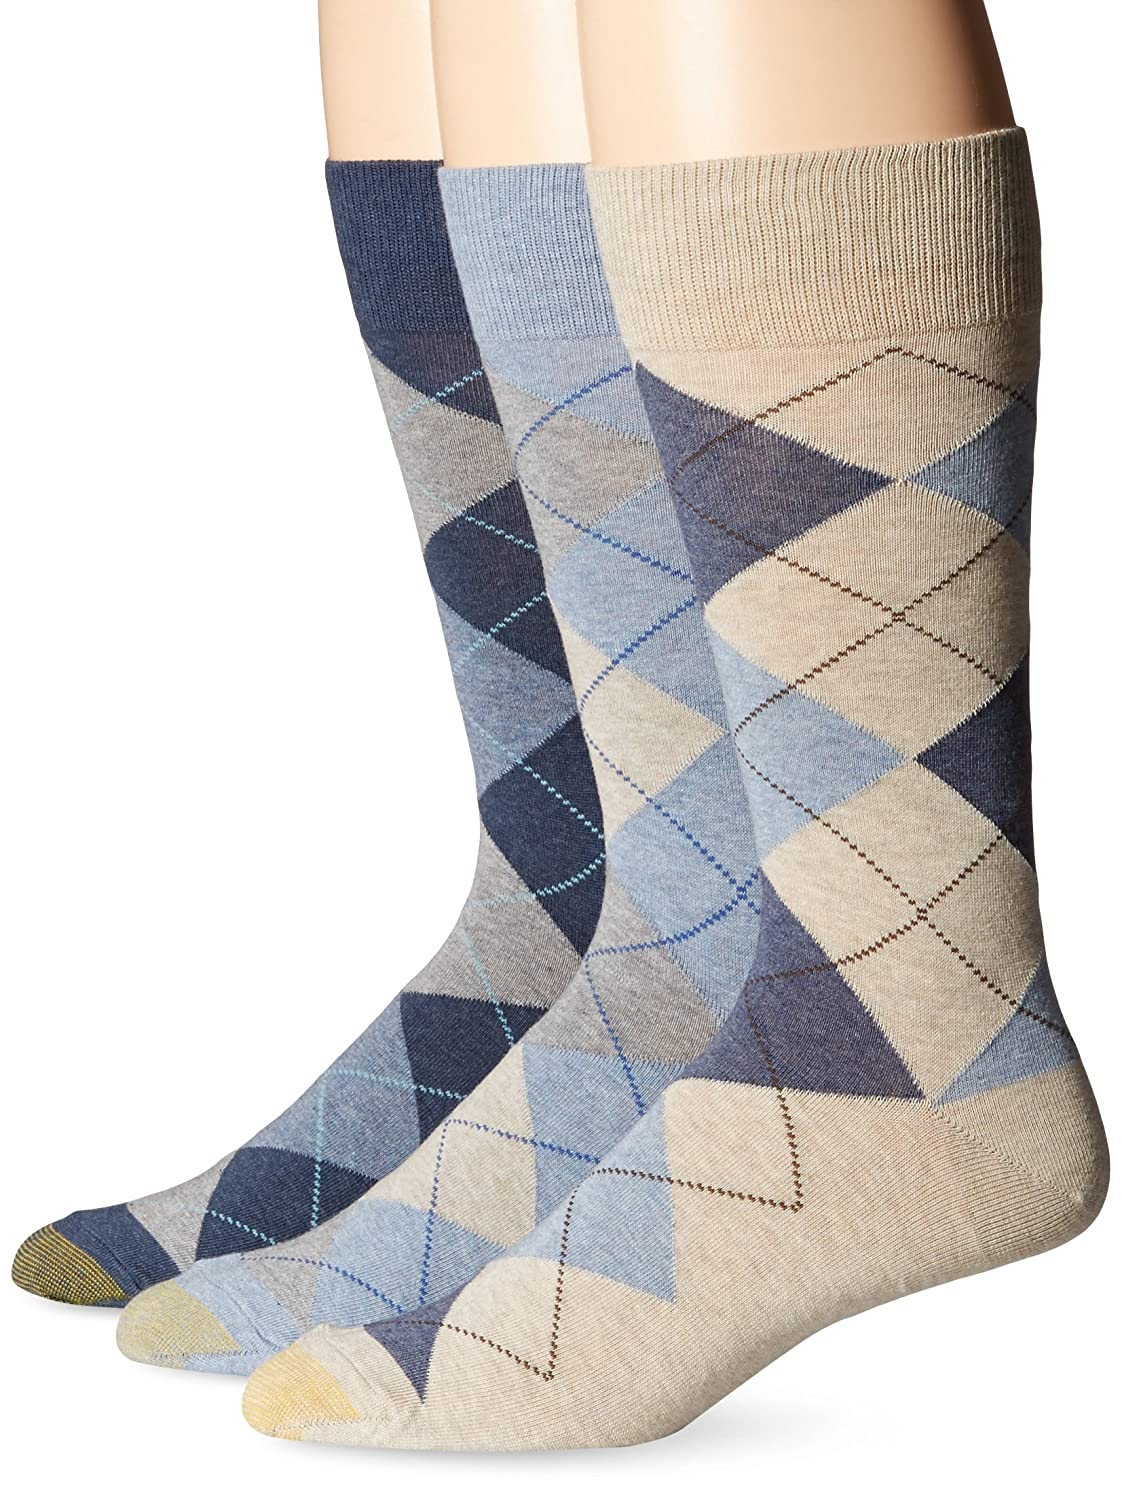 Gold Toe Men's 3-Pack Carlyle Argyle Crew Sock Gold Toe Men' s Socks